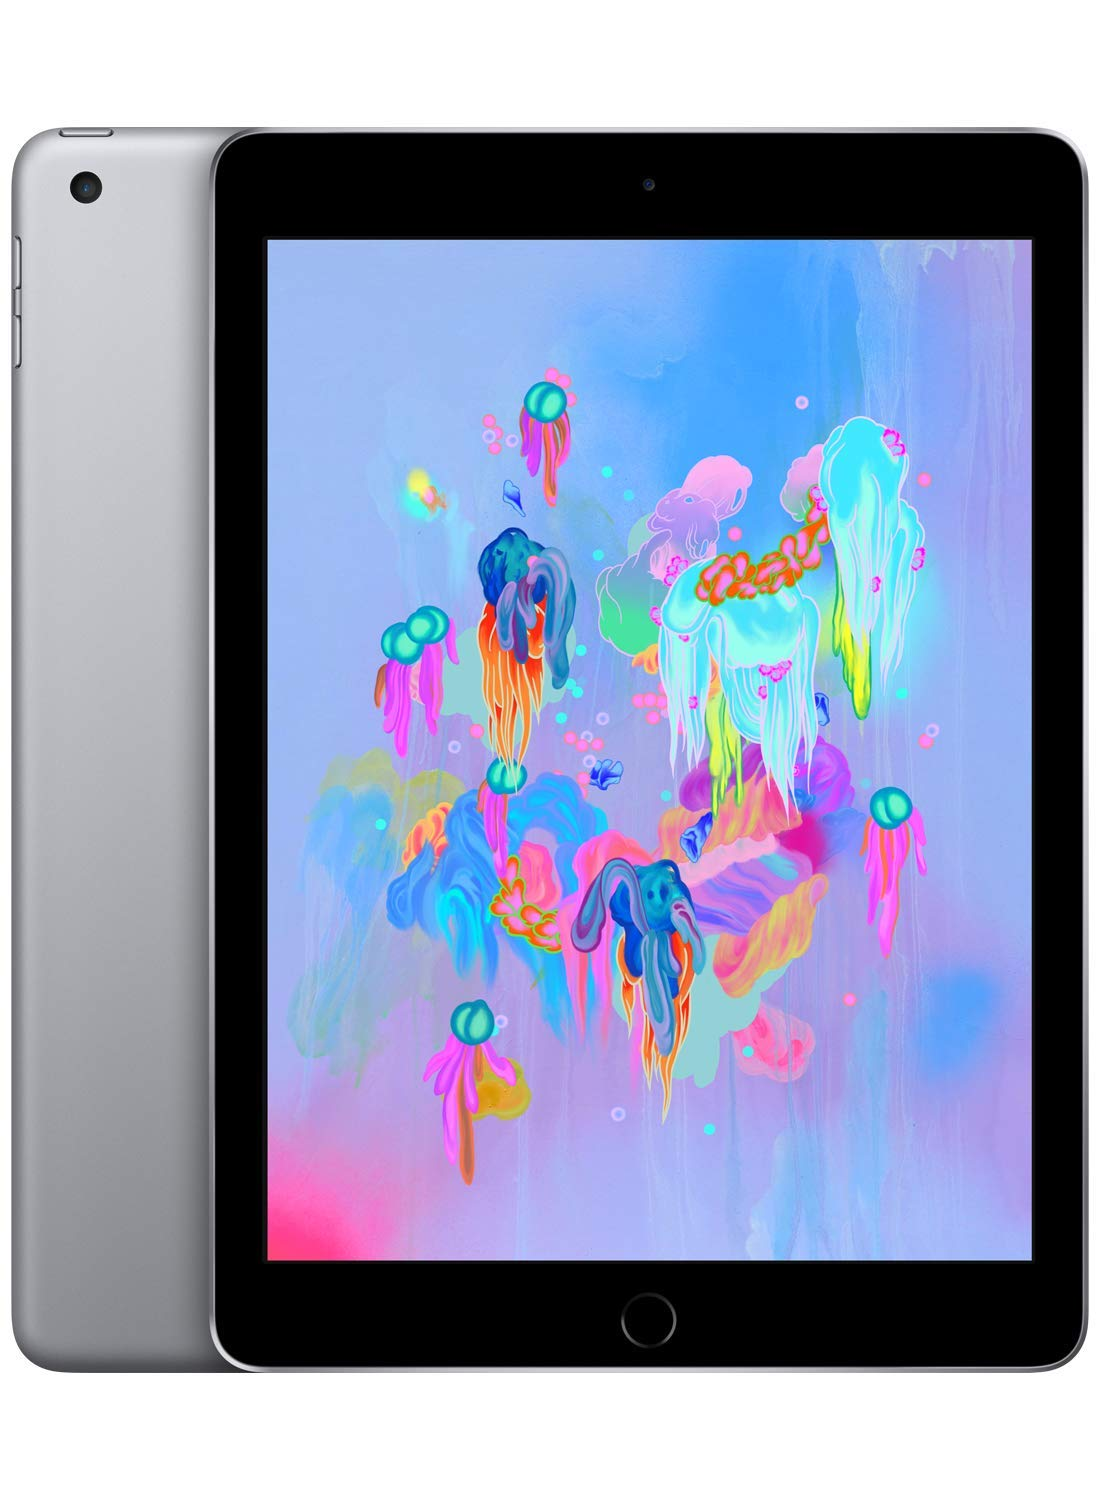 Apple iPad (Wi-Fi, 32GB) - Space Gray (Latest Model) by Apple